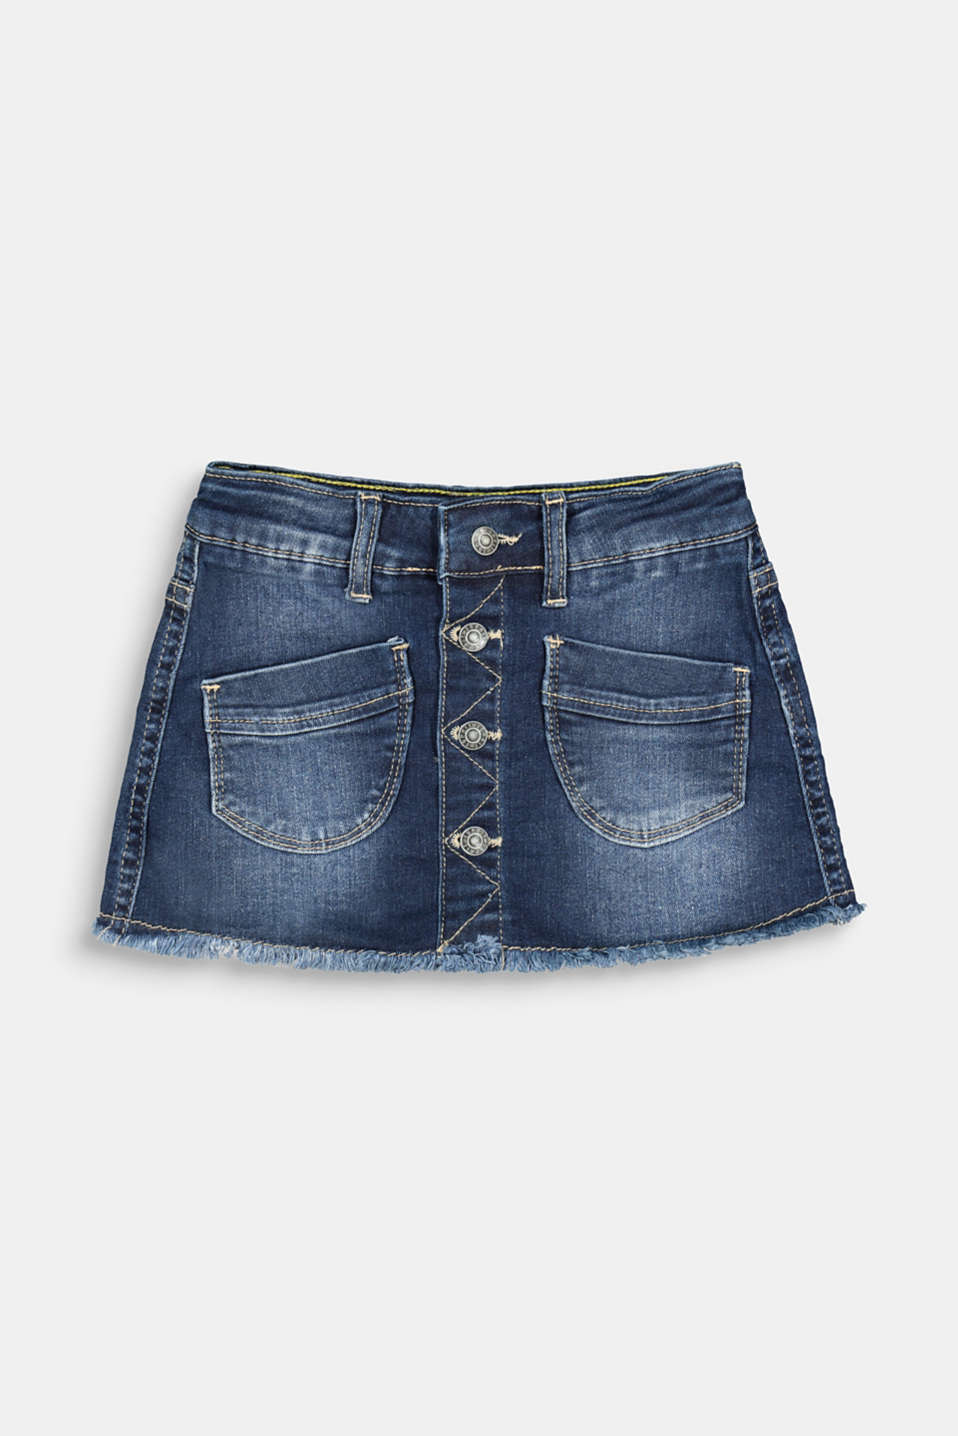 Esprit - In materiale riciclato: gonna in denim con abbottonatura